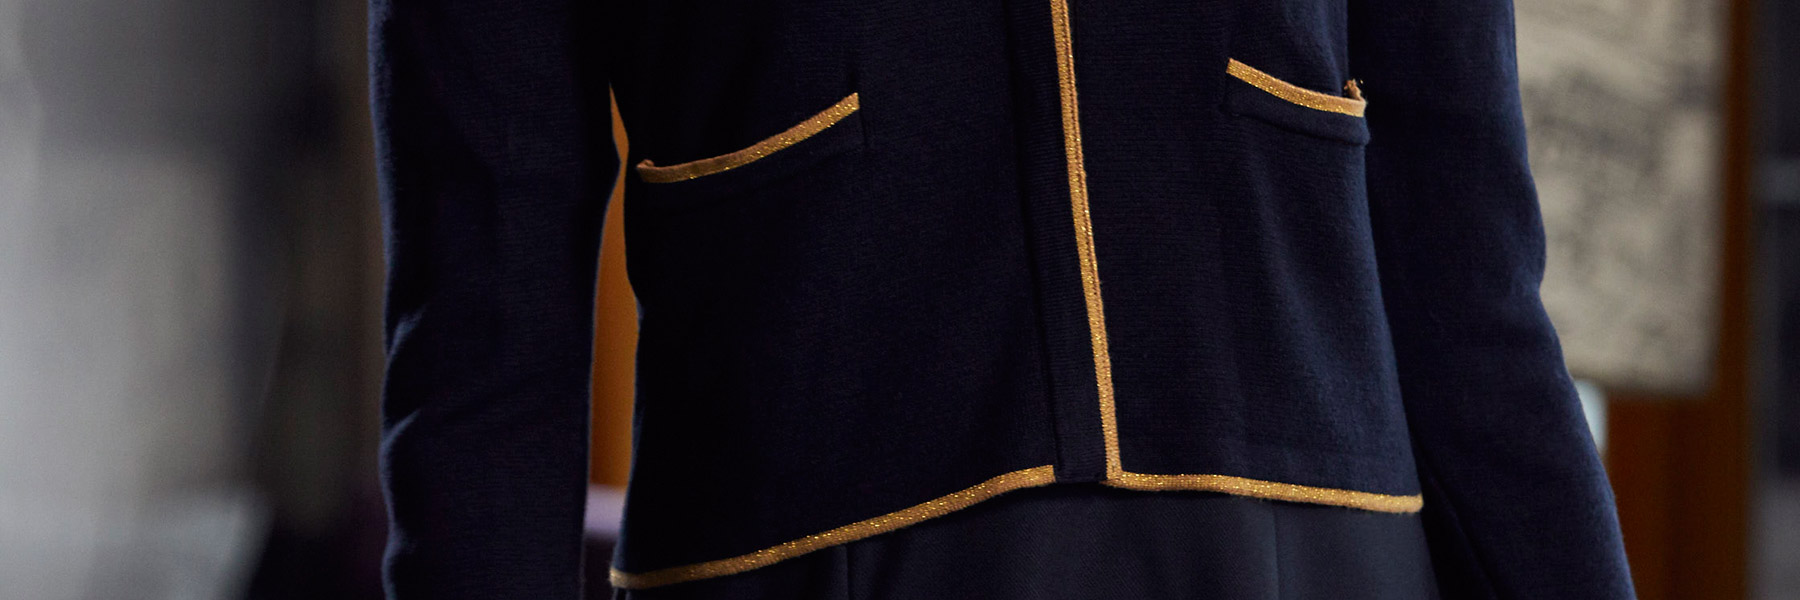 Royal Palaces housekeeping uniform detail